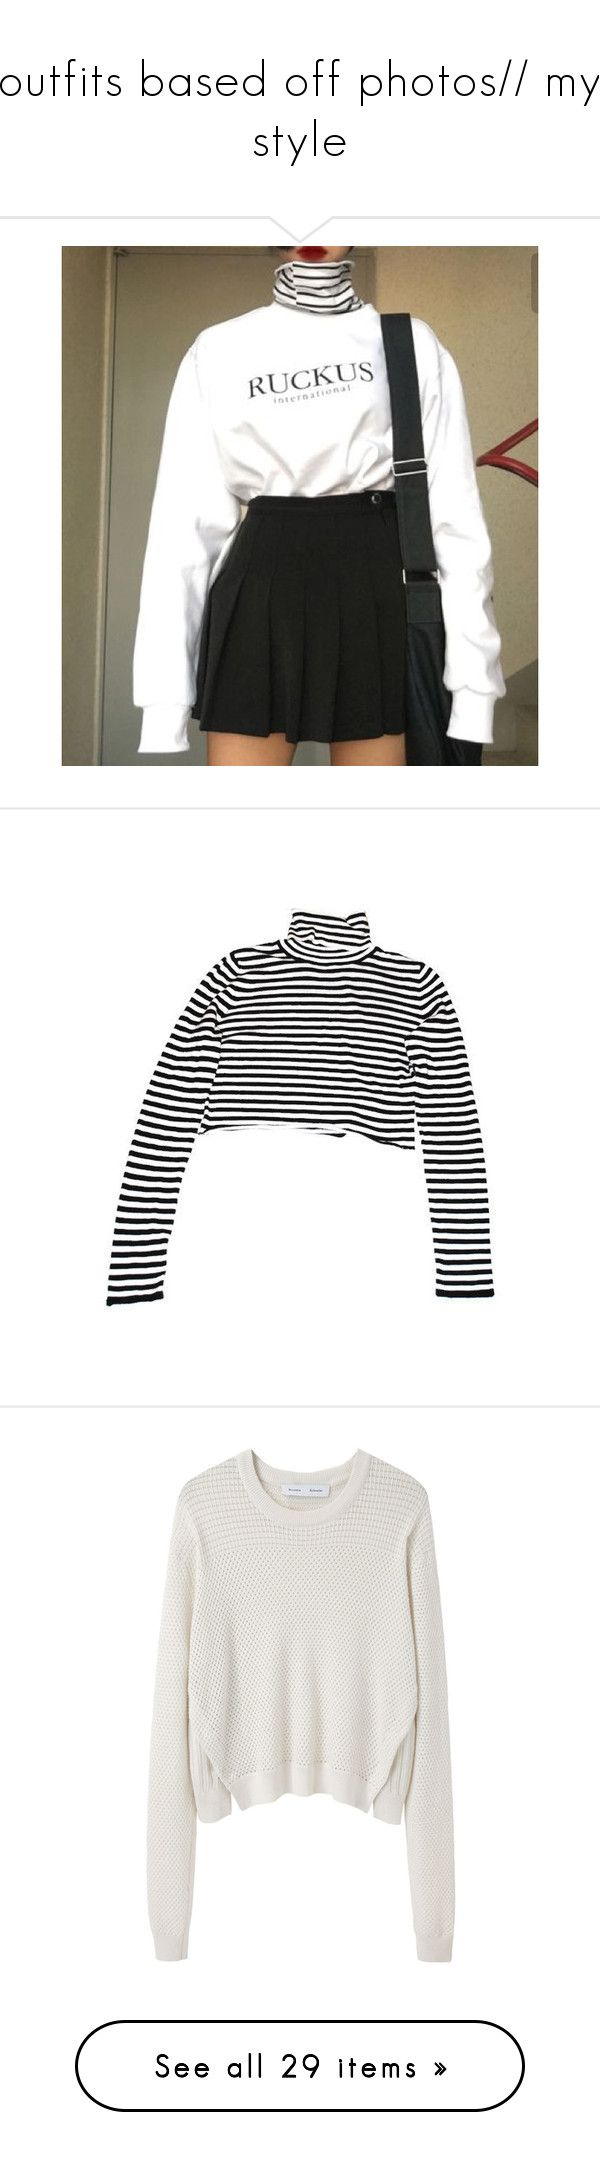 """outfits based off photos// my style"" by dead-rhapsody ❤ liked on Polyvore featuring tops, shirts, crop top, sweaters, cropped tops, black and white striped shirt, turtleneck shirt, black and white shirt, shirt crop top and jumpers"